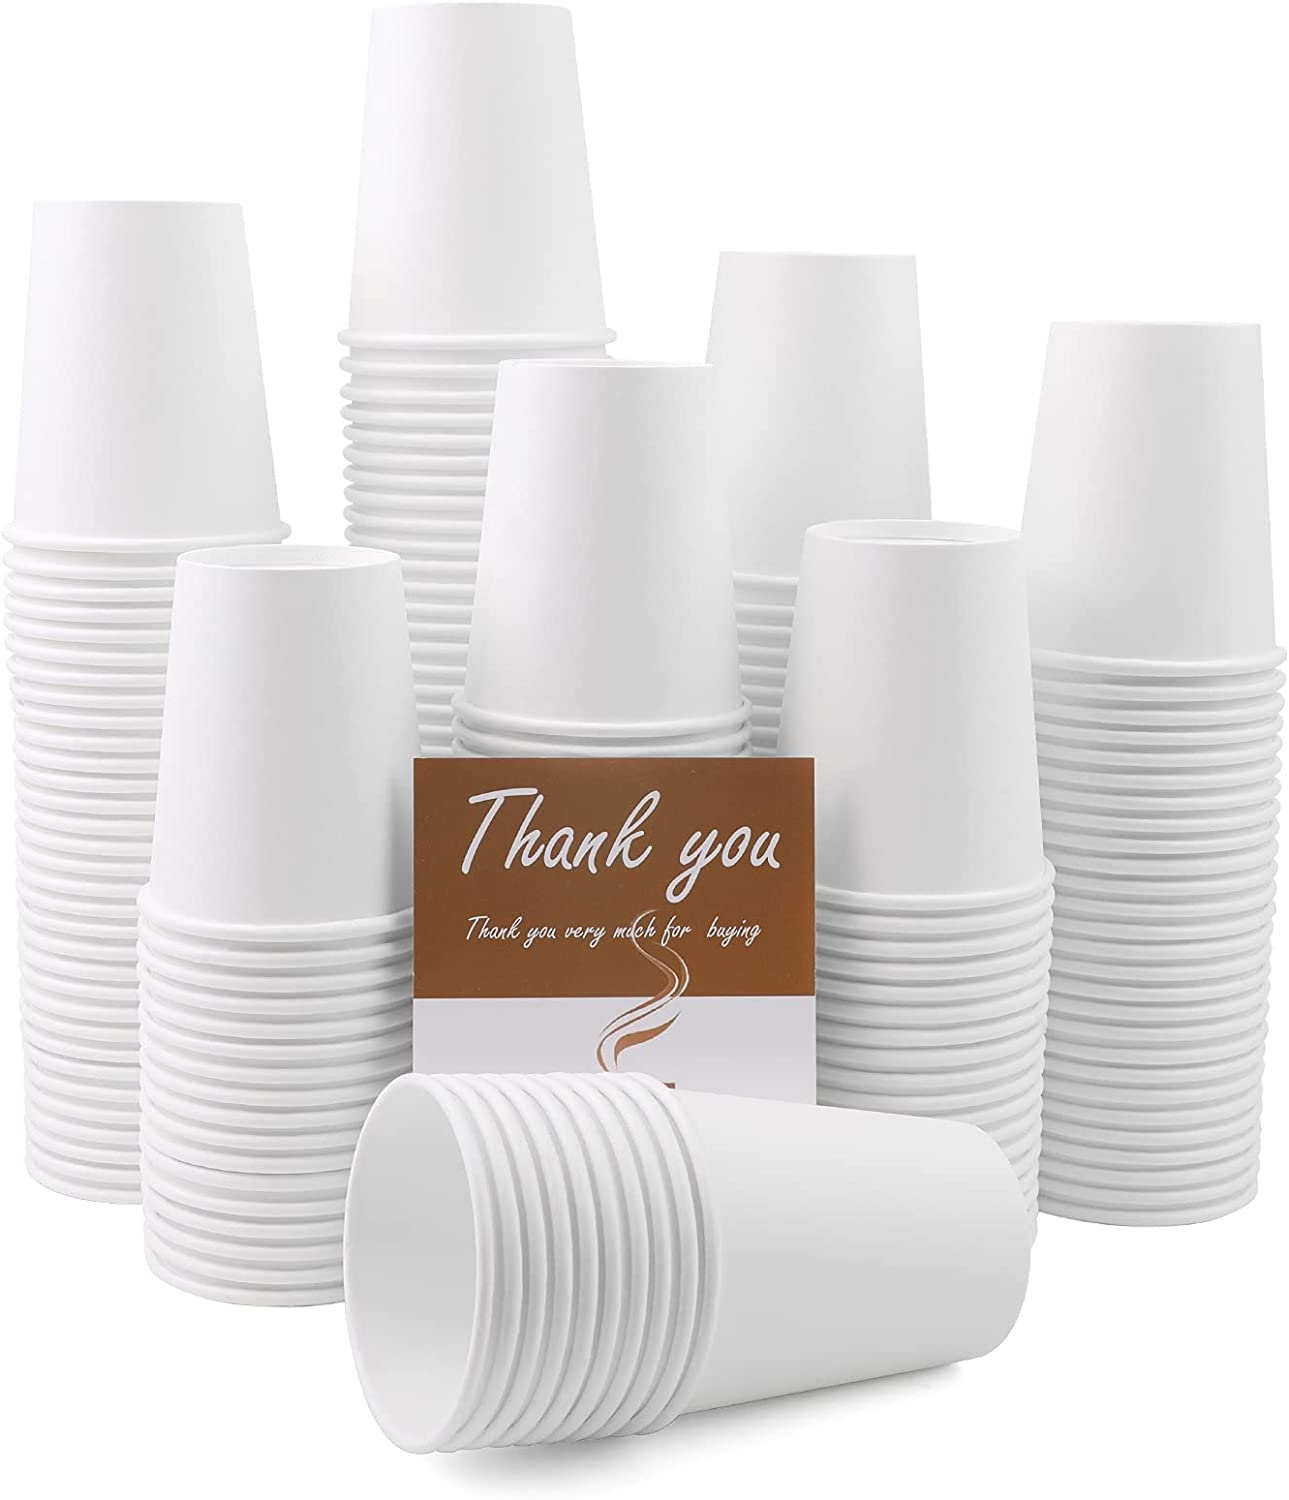 8 Oz Paper Cups, 200 Pack Disposable Paper Coffee Cups, Disposable Water Paper Cups, Hot/Cold Beverage Drinking Cup for Water, Juice, Coffee, Milk or Tea